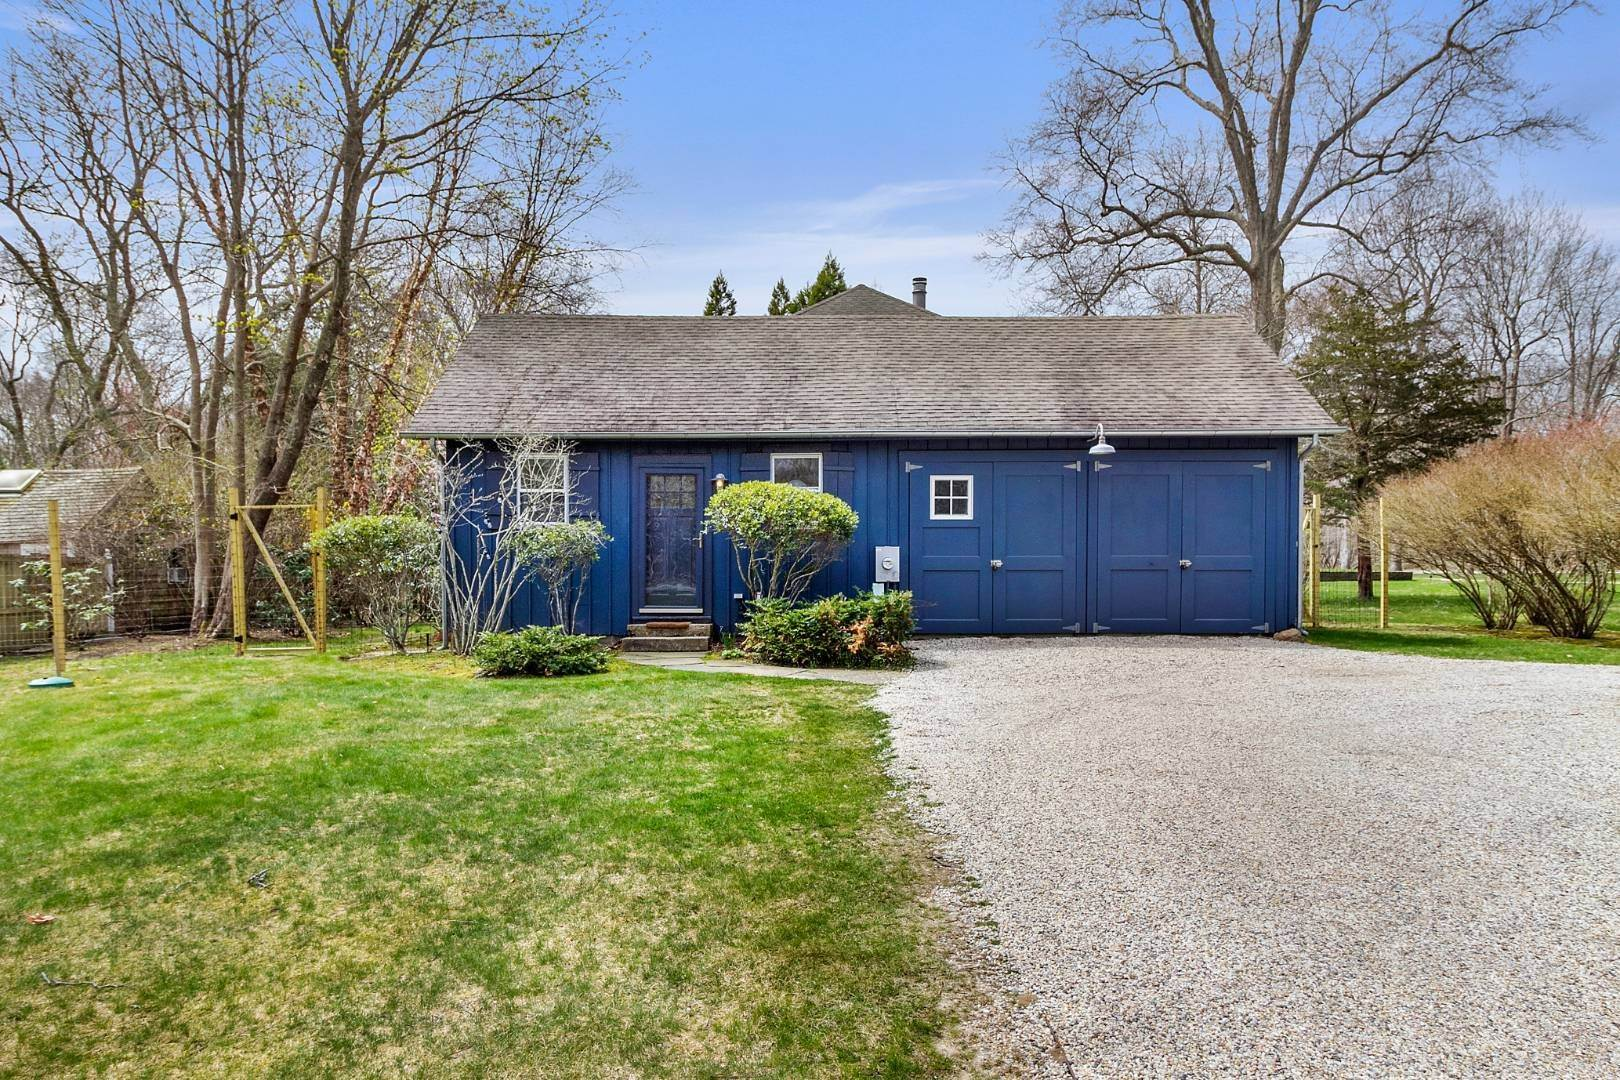 18. Single Family Home for Sale at Historic Springs Two-House Compound 104 Old Stone Hwy, East Hampton, NY 11937